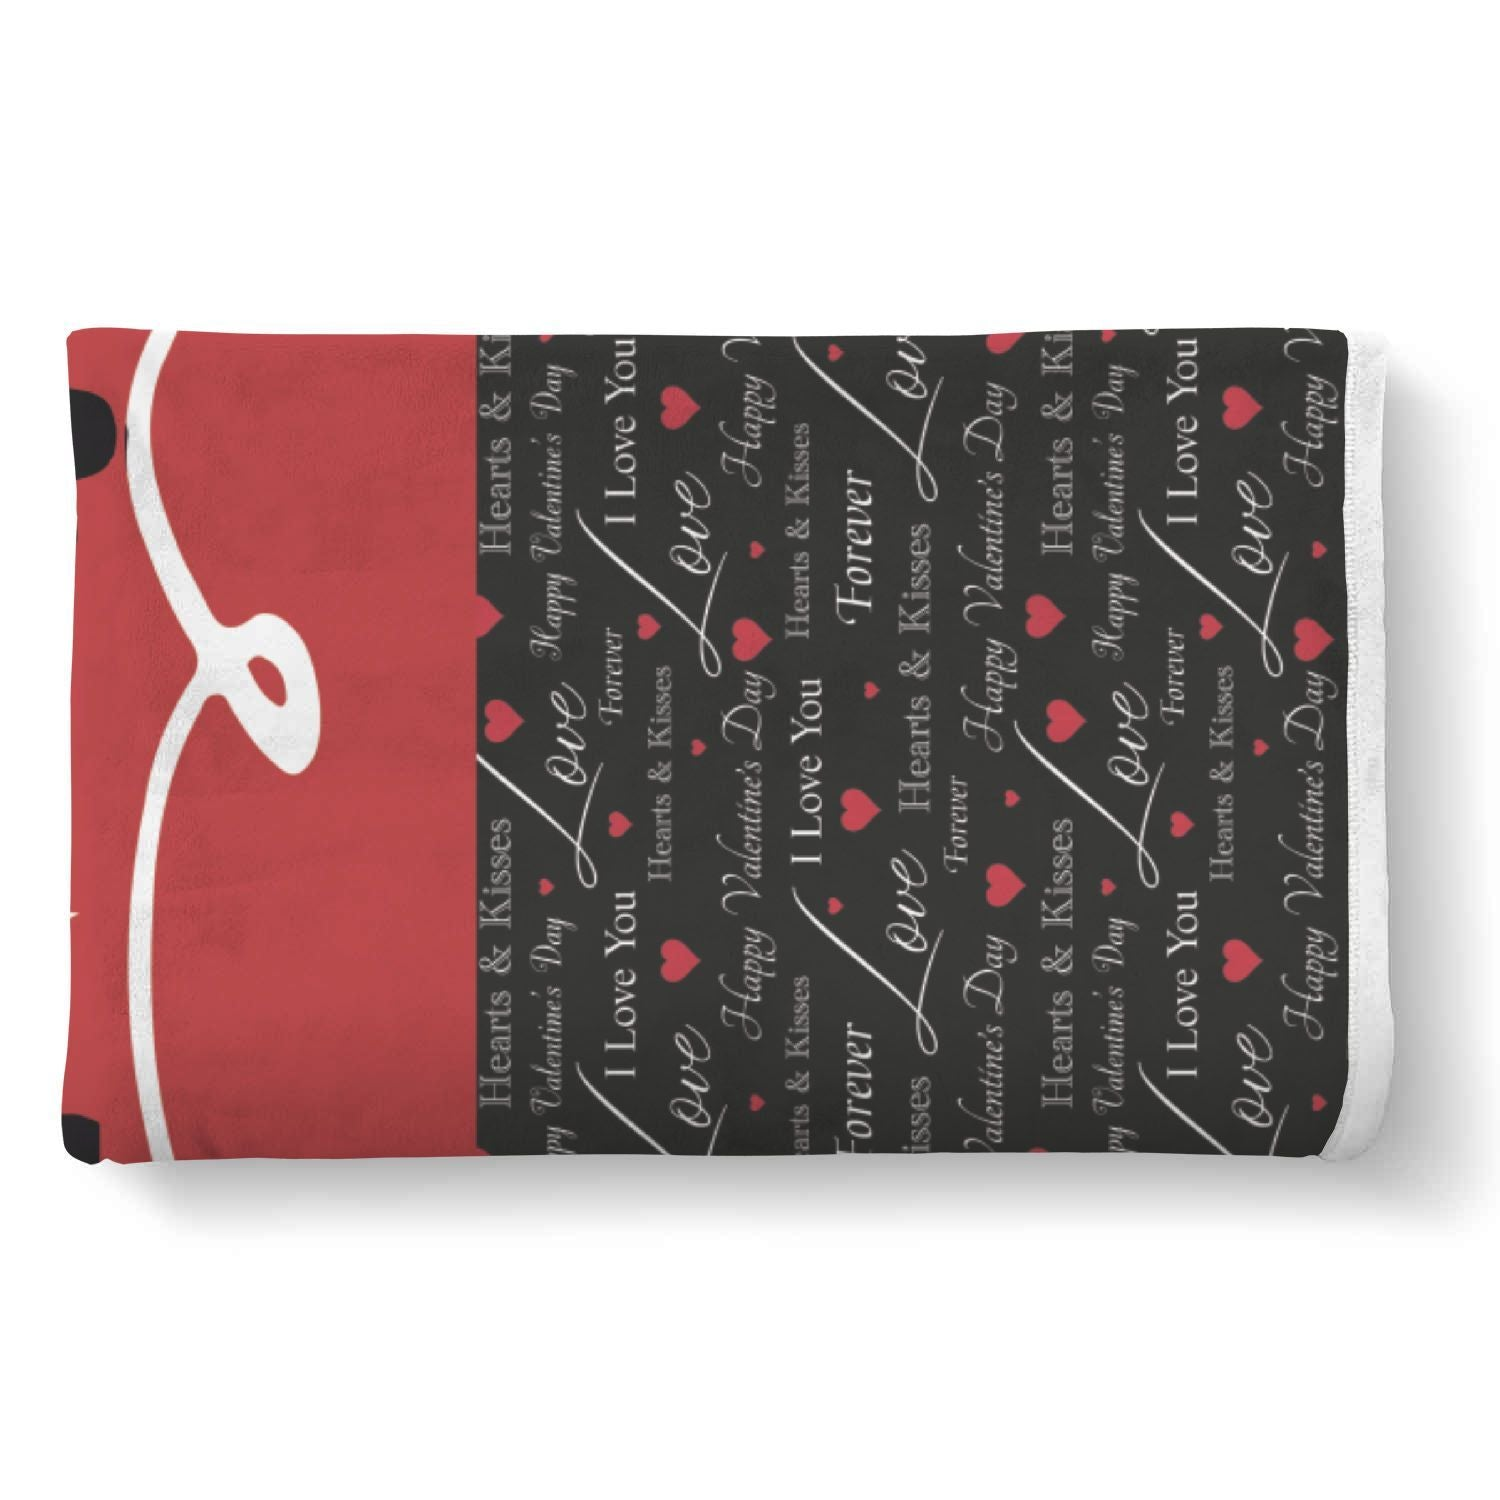 Love Design Normal Blanket Towel - Get Set Style Metro